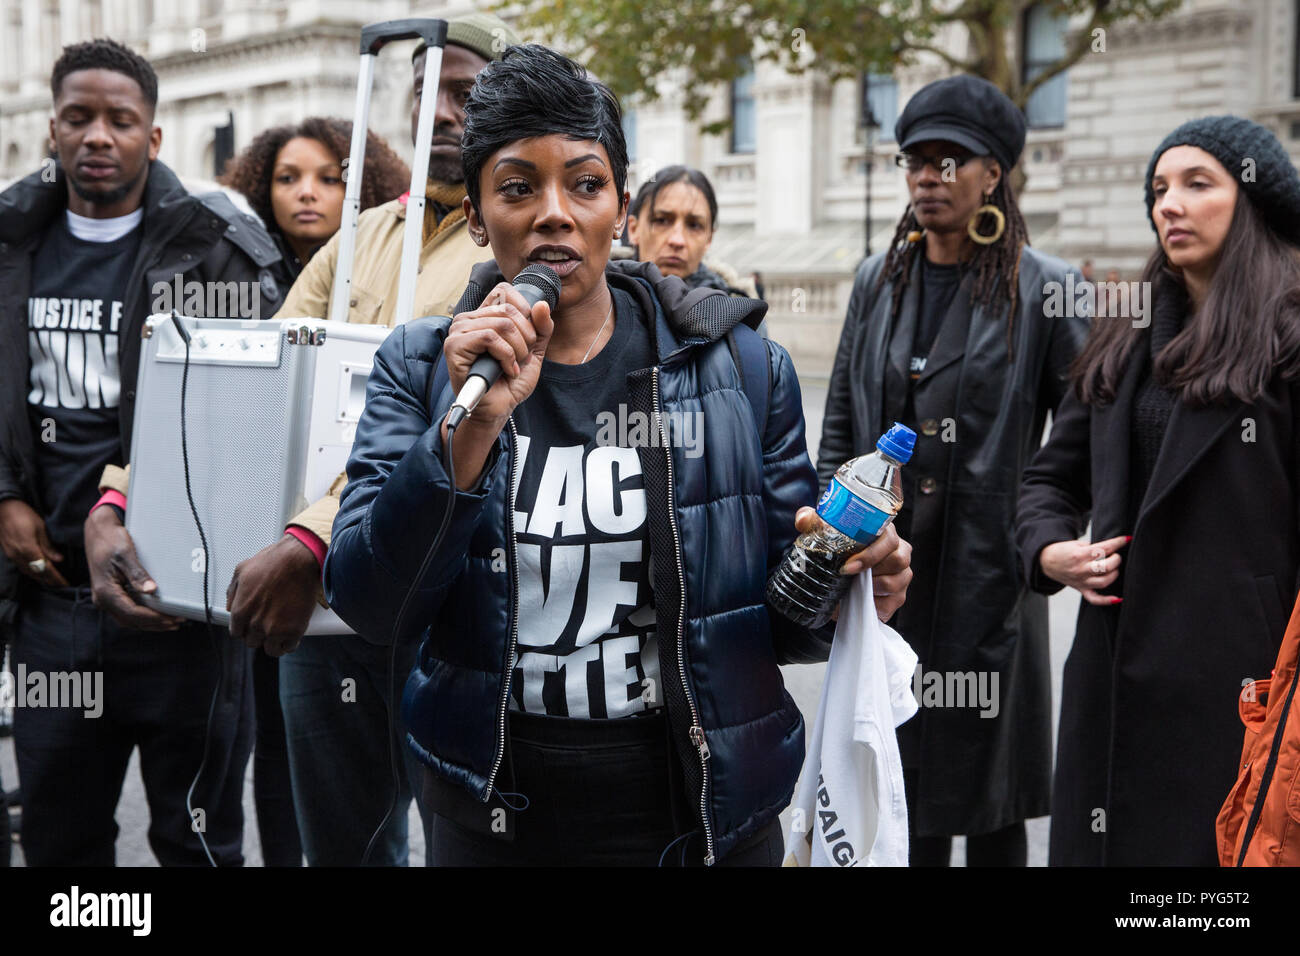 London, UK. 27th October, 2018. Kadisha Brown-Burrell, sister of Kingsley Burrell, addresses campaigners from the United Families and Friends Campaign (UFFC) taking part in the 20th annual procession to Downing Street in remembrance of family members and friends who died in police custody, prison, immigration detention or secure psychiatric hospitals. Kingsley Burrell, 29, died from a cardiac arrest in March 2011 after being restrained whilst detained by West Midlands Police. Credit: Mark Kerrison/Alamy Live News - Stock Image